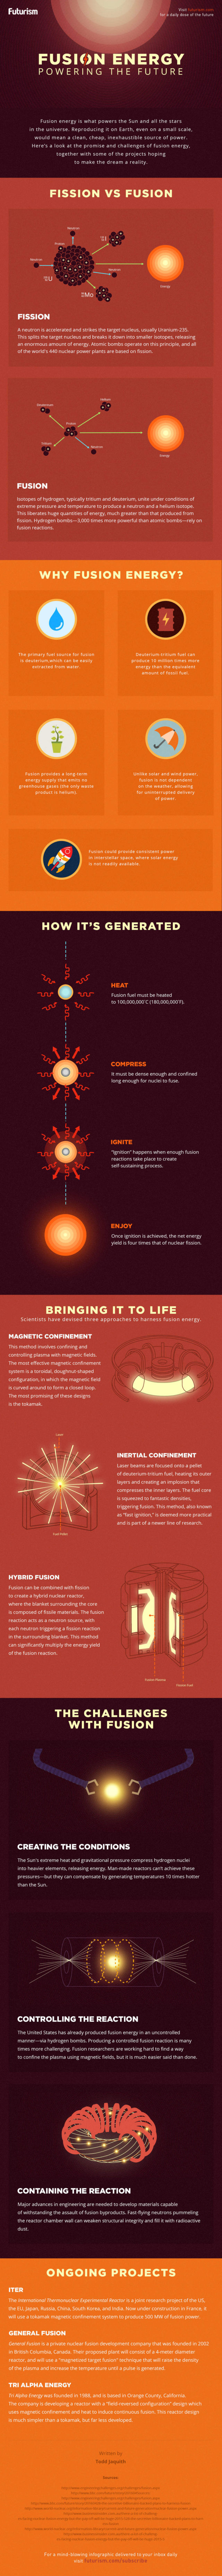 Fusion Energy - powering the Future